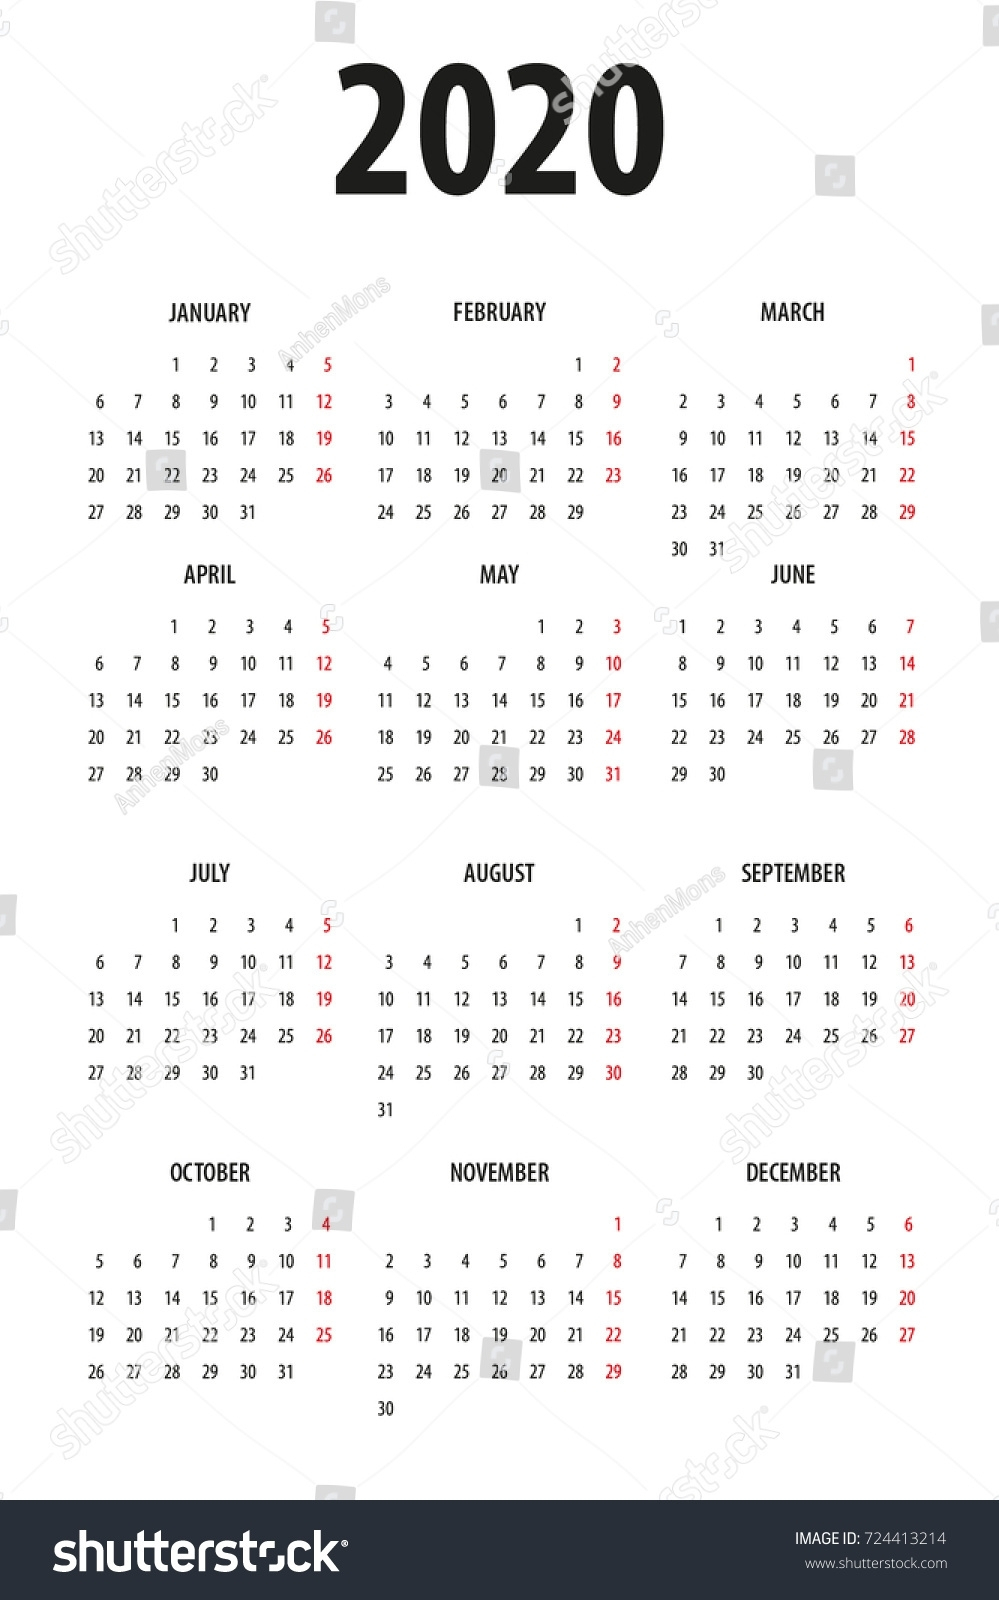 Simple Calendar Template 2020 On White Stock Vector (Royalty Free for Free Calendars 2020 Start With Monday